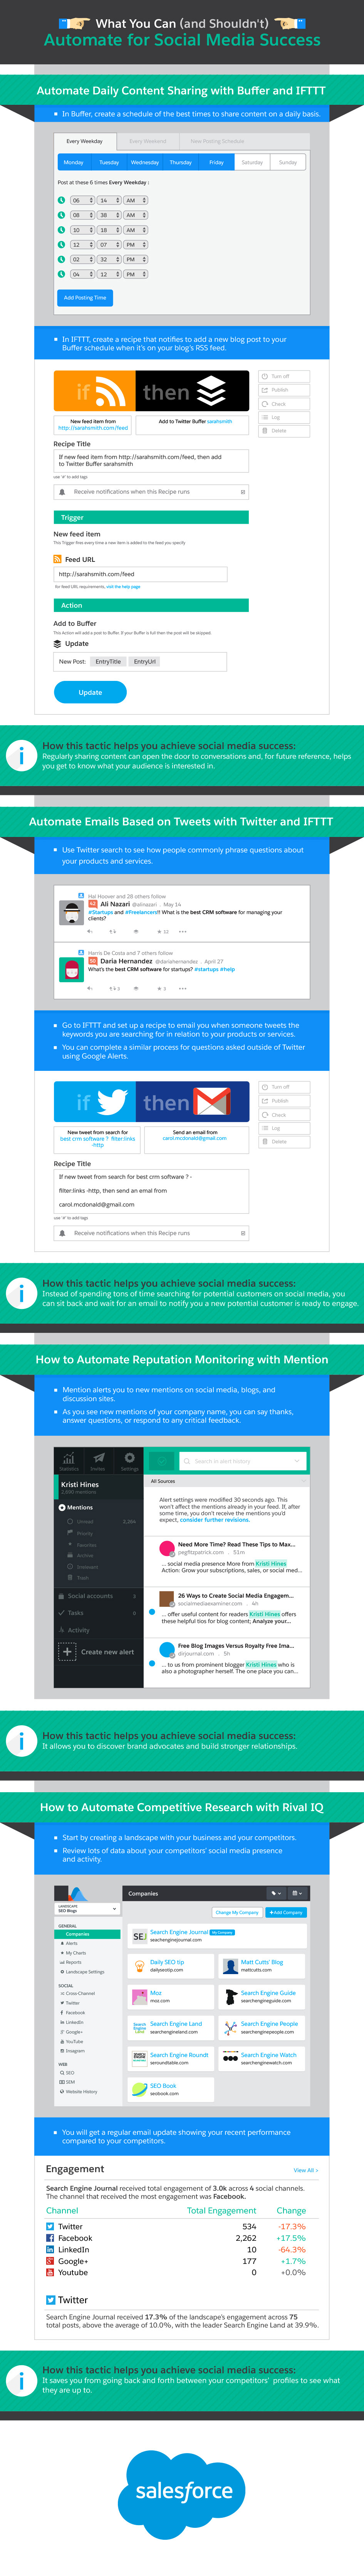 What You Can (and Shouldn't) Automate for Social Media Success - infographic